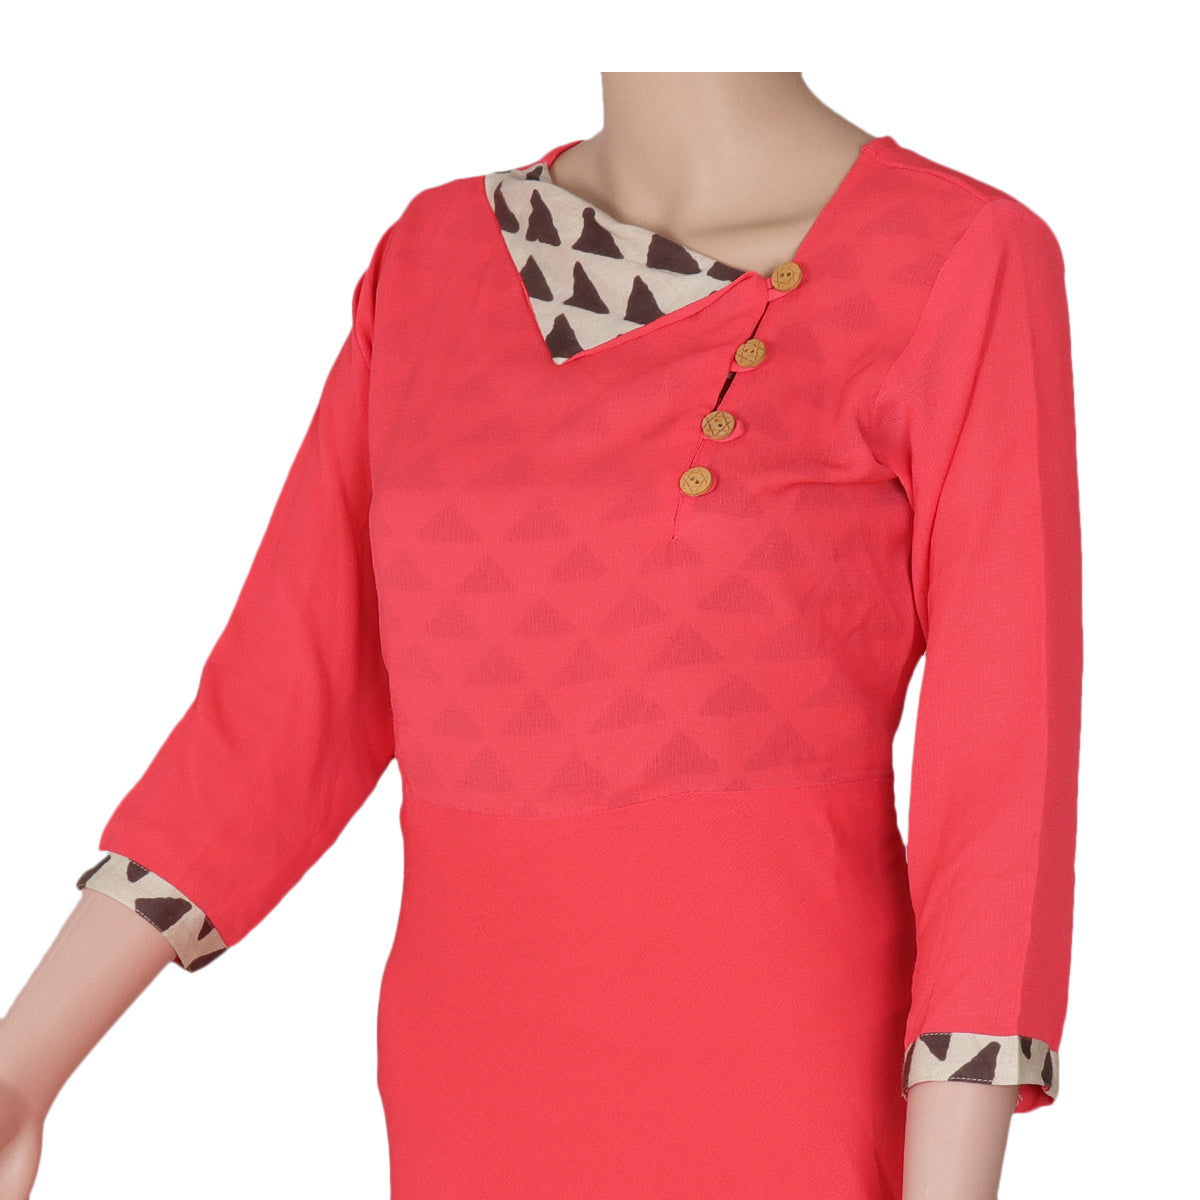 Chiffon Kurta tomato red and Beige for Rs.Rs. 1840.00 | kurta by Prashanti Sarees